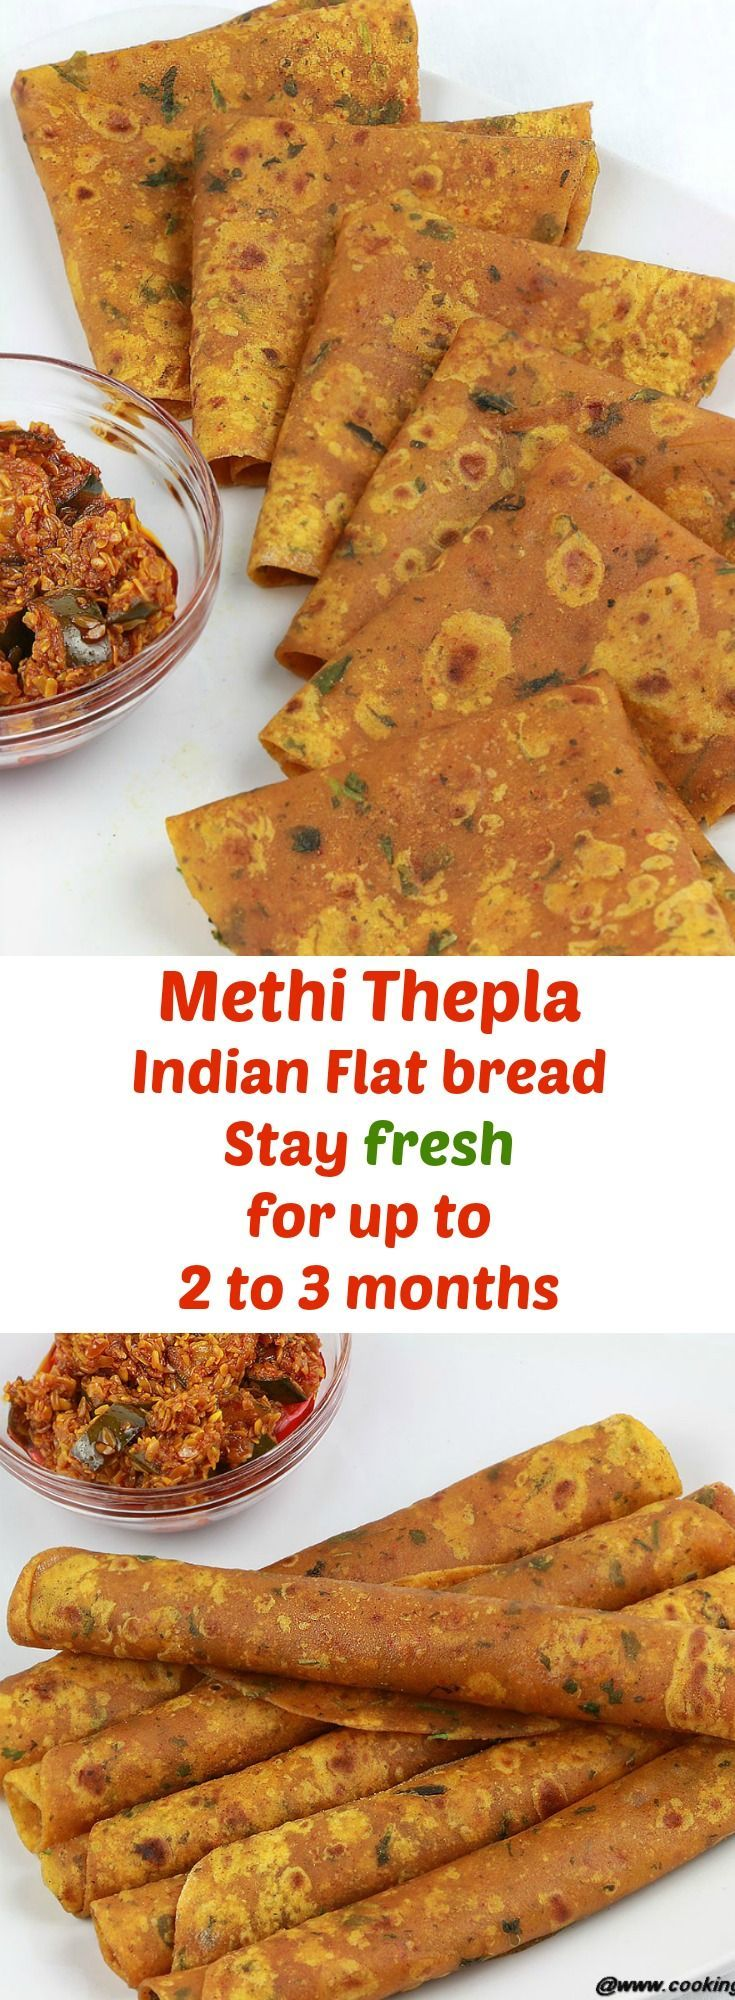 Gujarati Methi Thepla, a must try lightly spices chapati like Indian flat bread is prepared from Whole Wheat flour, Fenugreek leaves and other spices. Methi Thepla are light as well as healthy. It's a all time favorite at home.